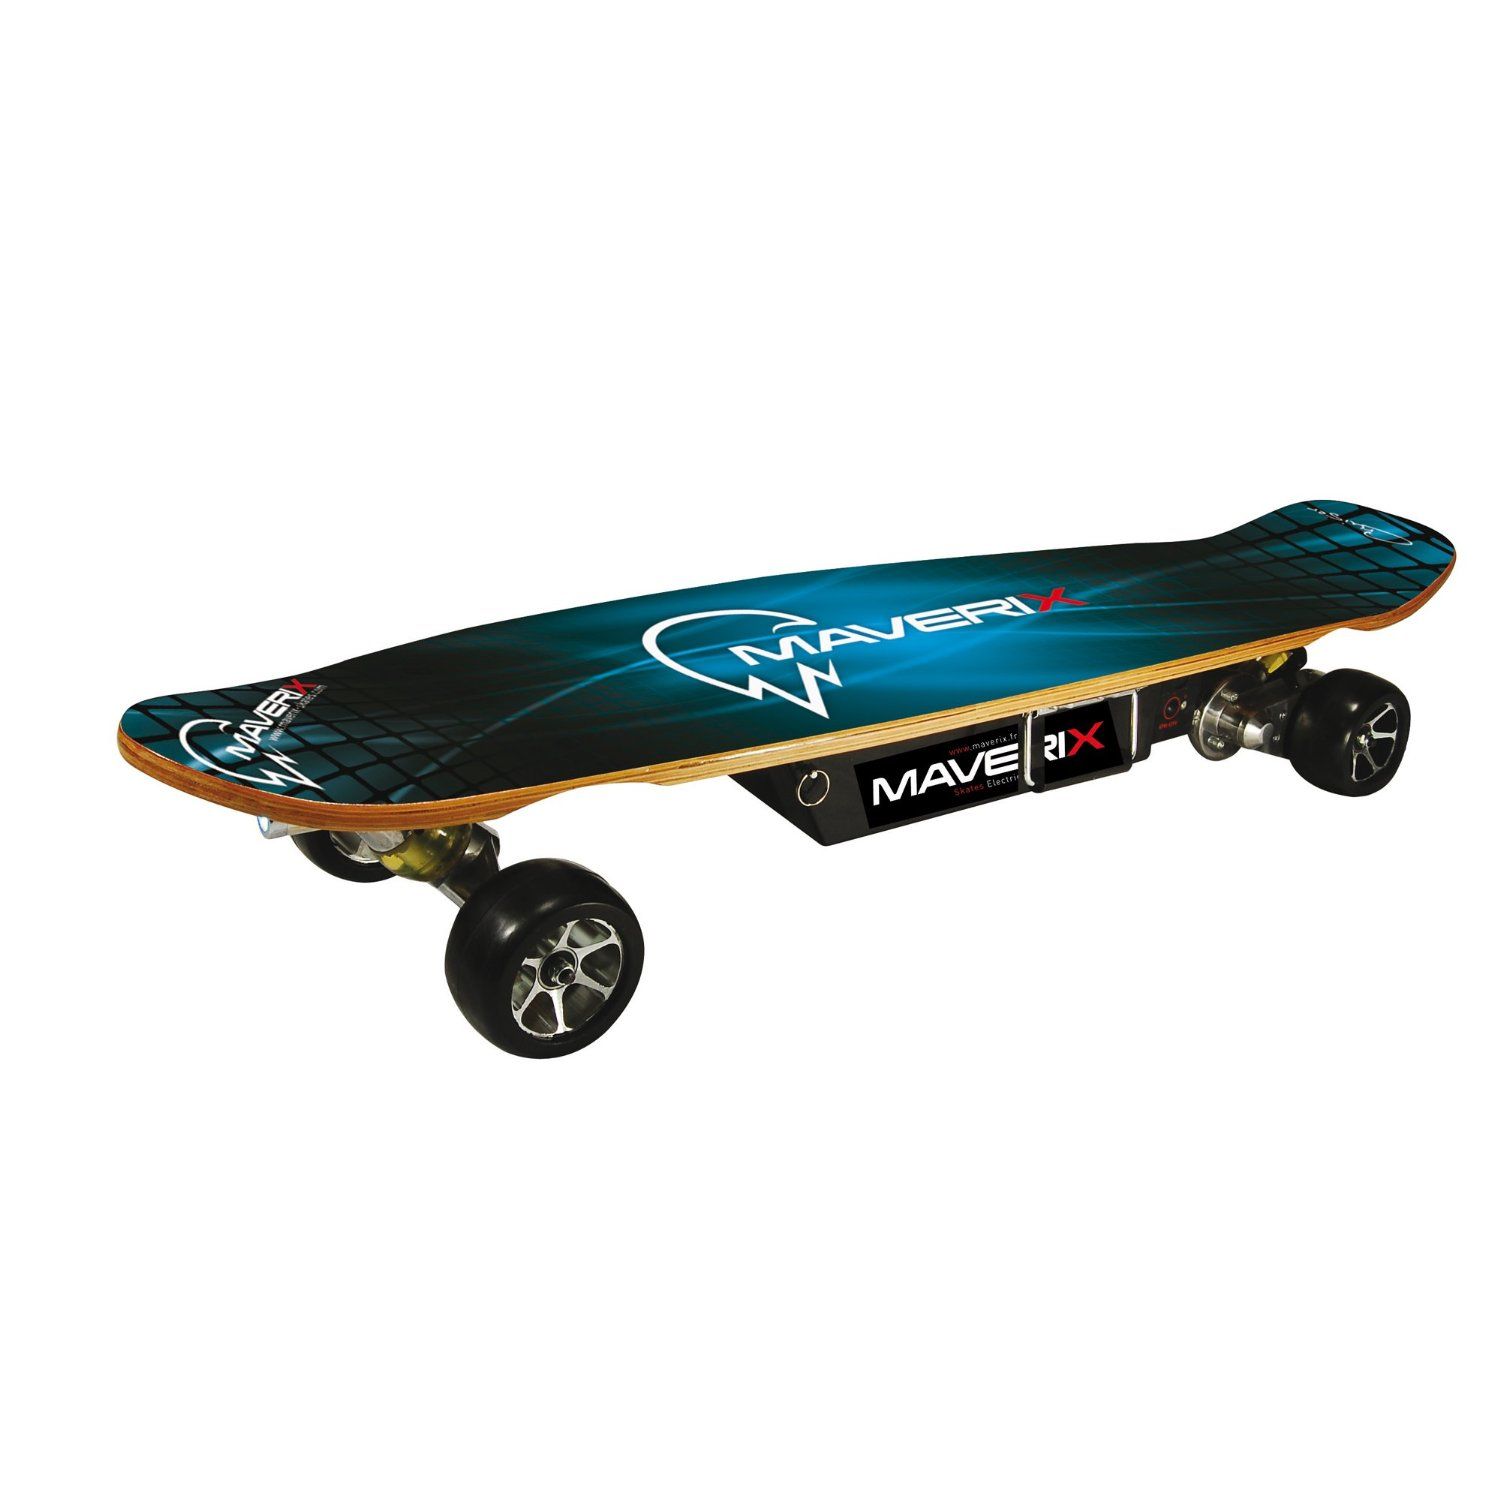 maverix cruiser lithium skate lectrique 600 w trott 39 n 39 scoot have elec fun. Black Bedroom Furniture Sets. Home Design Ideas